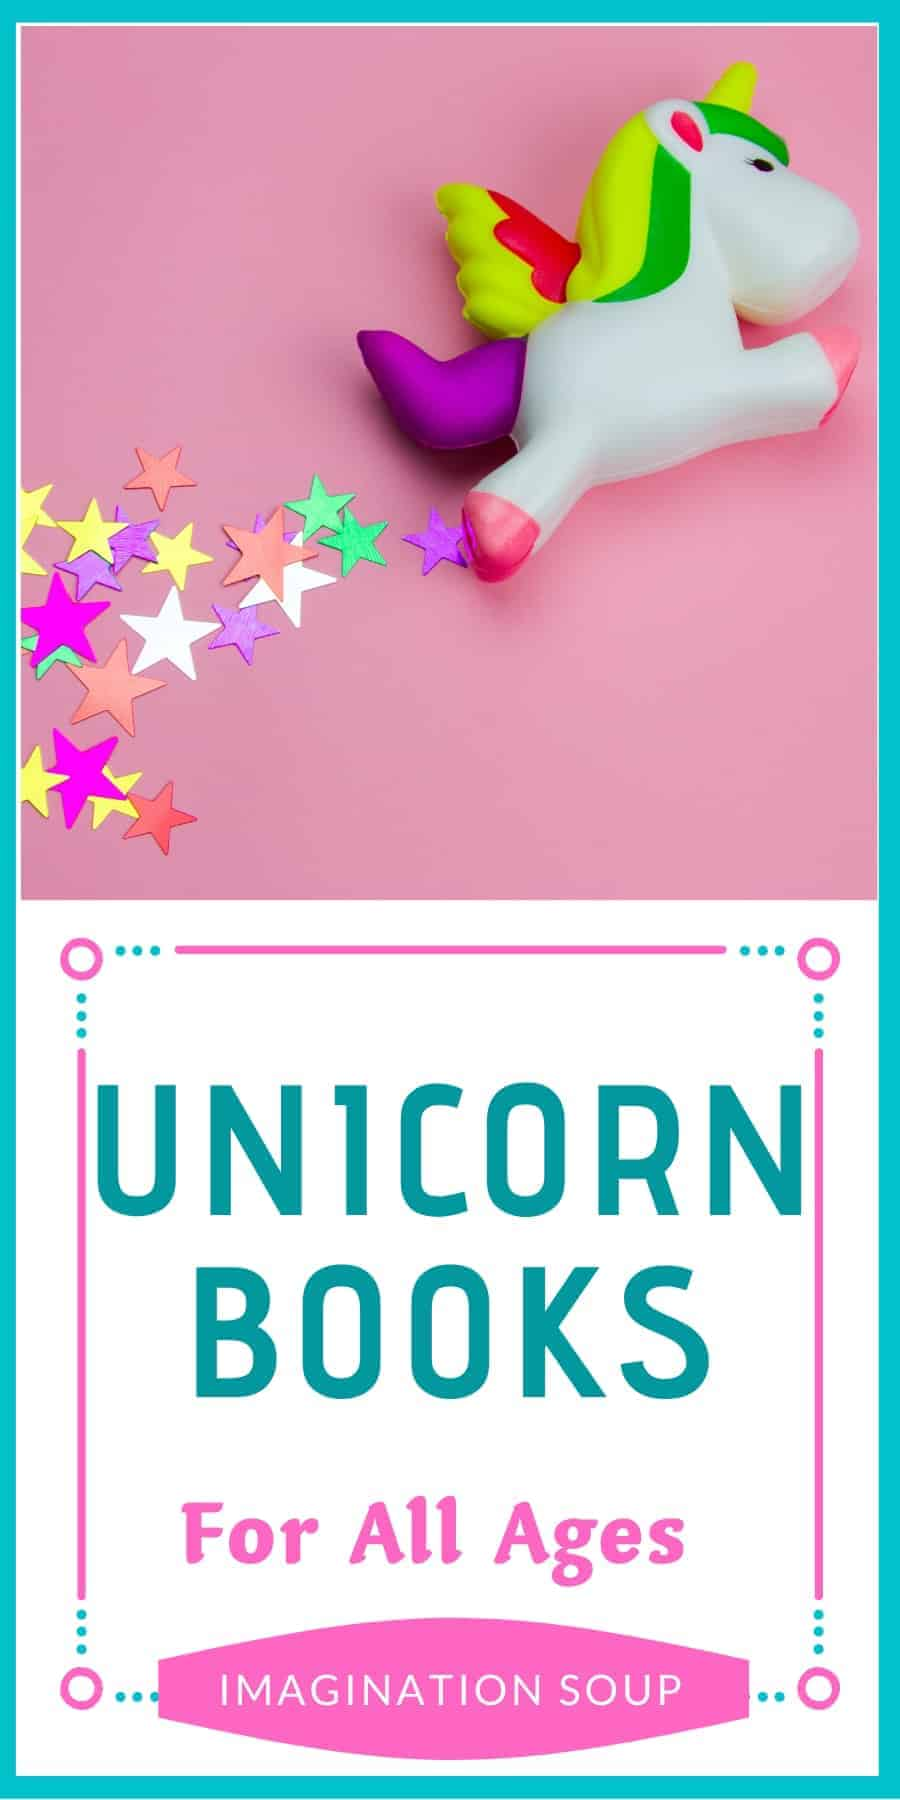 unicorn books for all ages